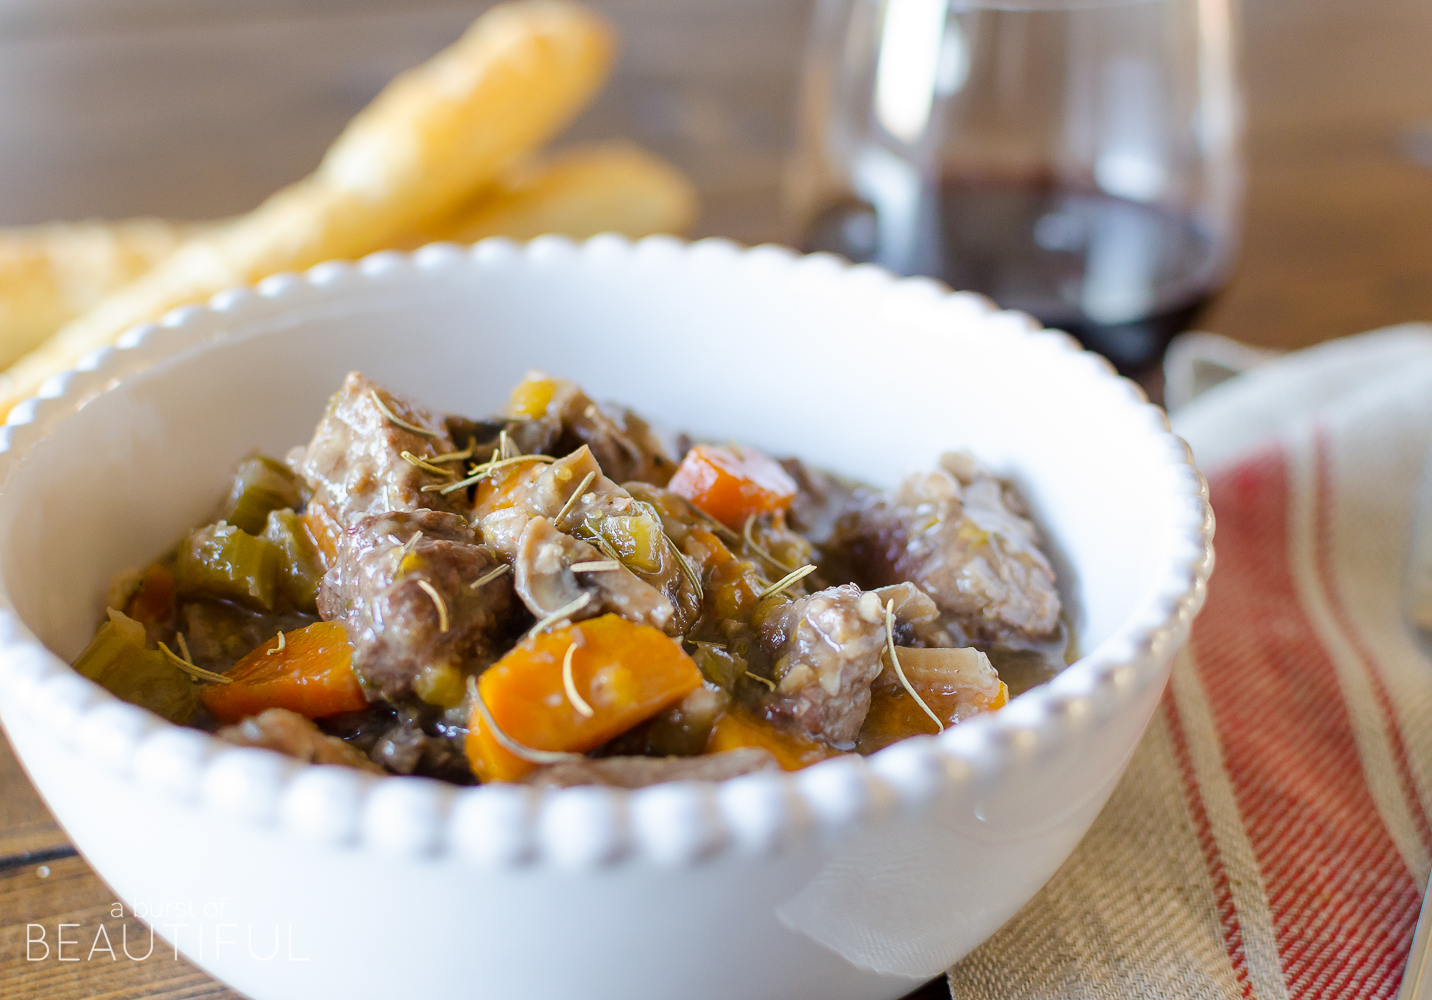 Homemade Beef and Mushroom Stew is a delicious and hearty meal to serve during the holidays